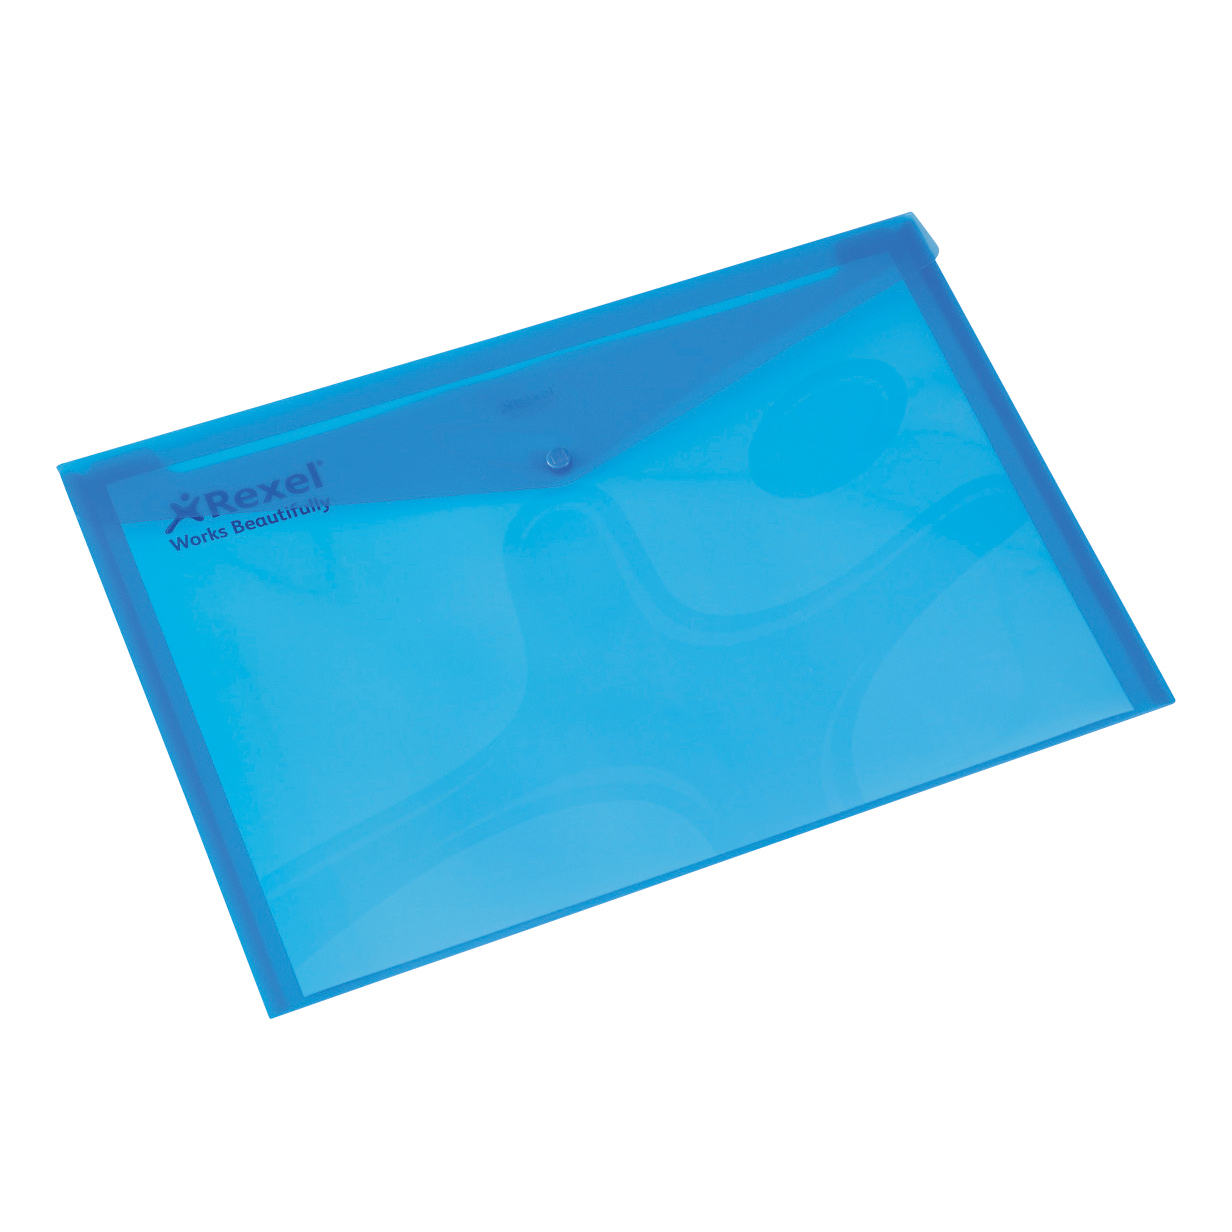 Rexel Popper Wallet Folder Polypropylene A4 Translucent Blue Ref 16129Bu Pack 5